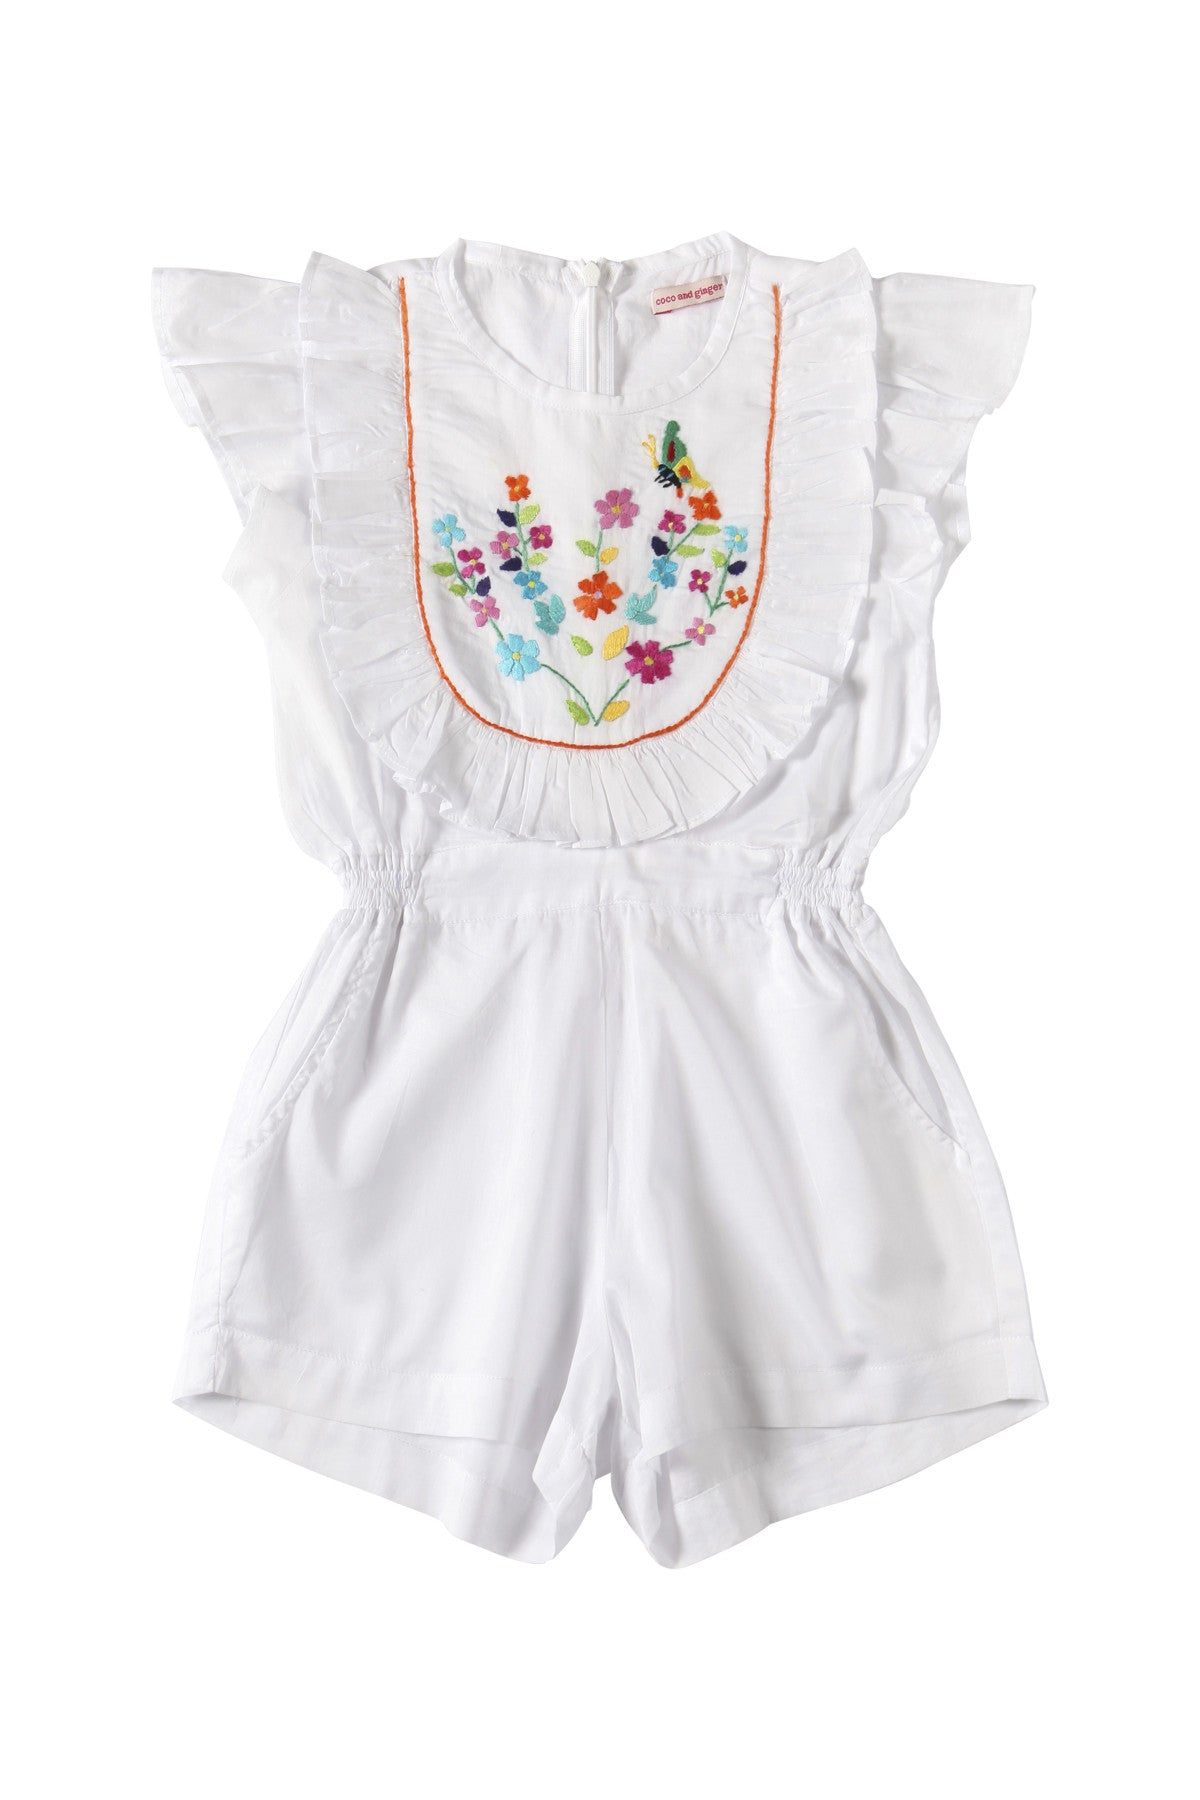 Peony Playsuit White with Handstitch